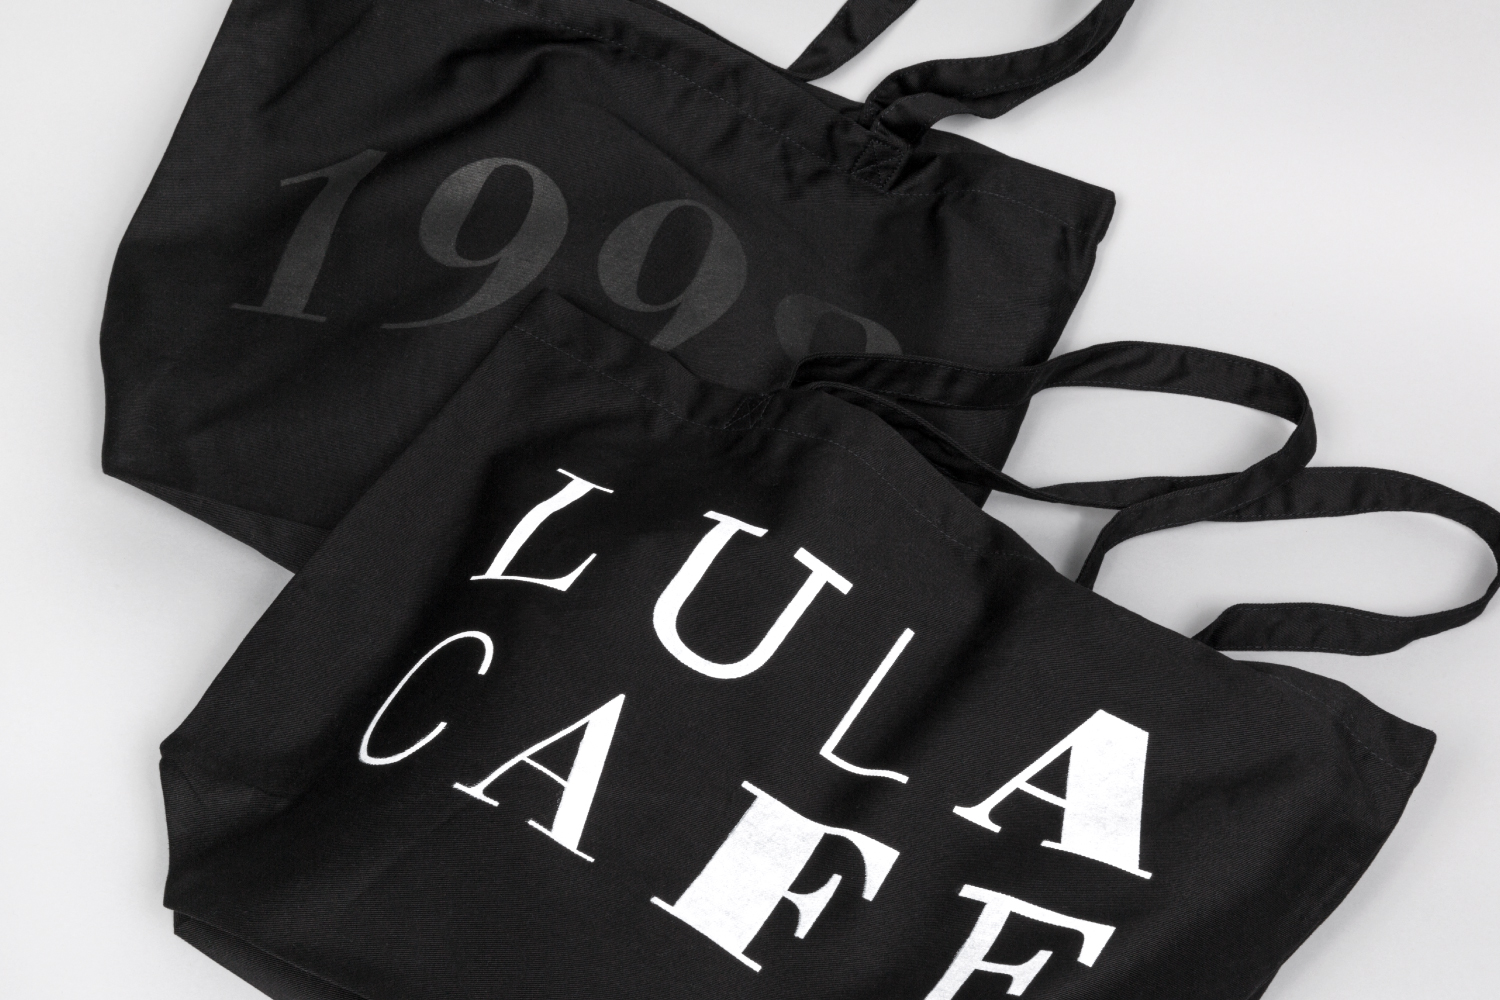 Lula Cafe Chicago bag design.